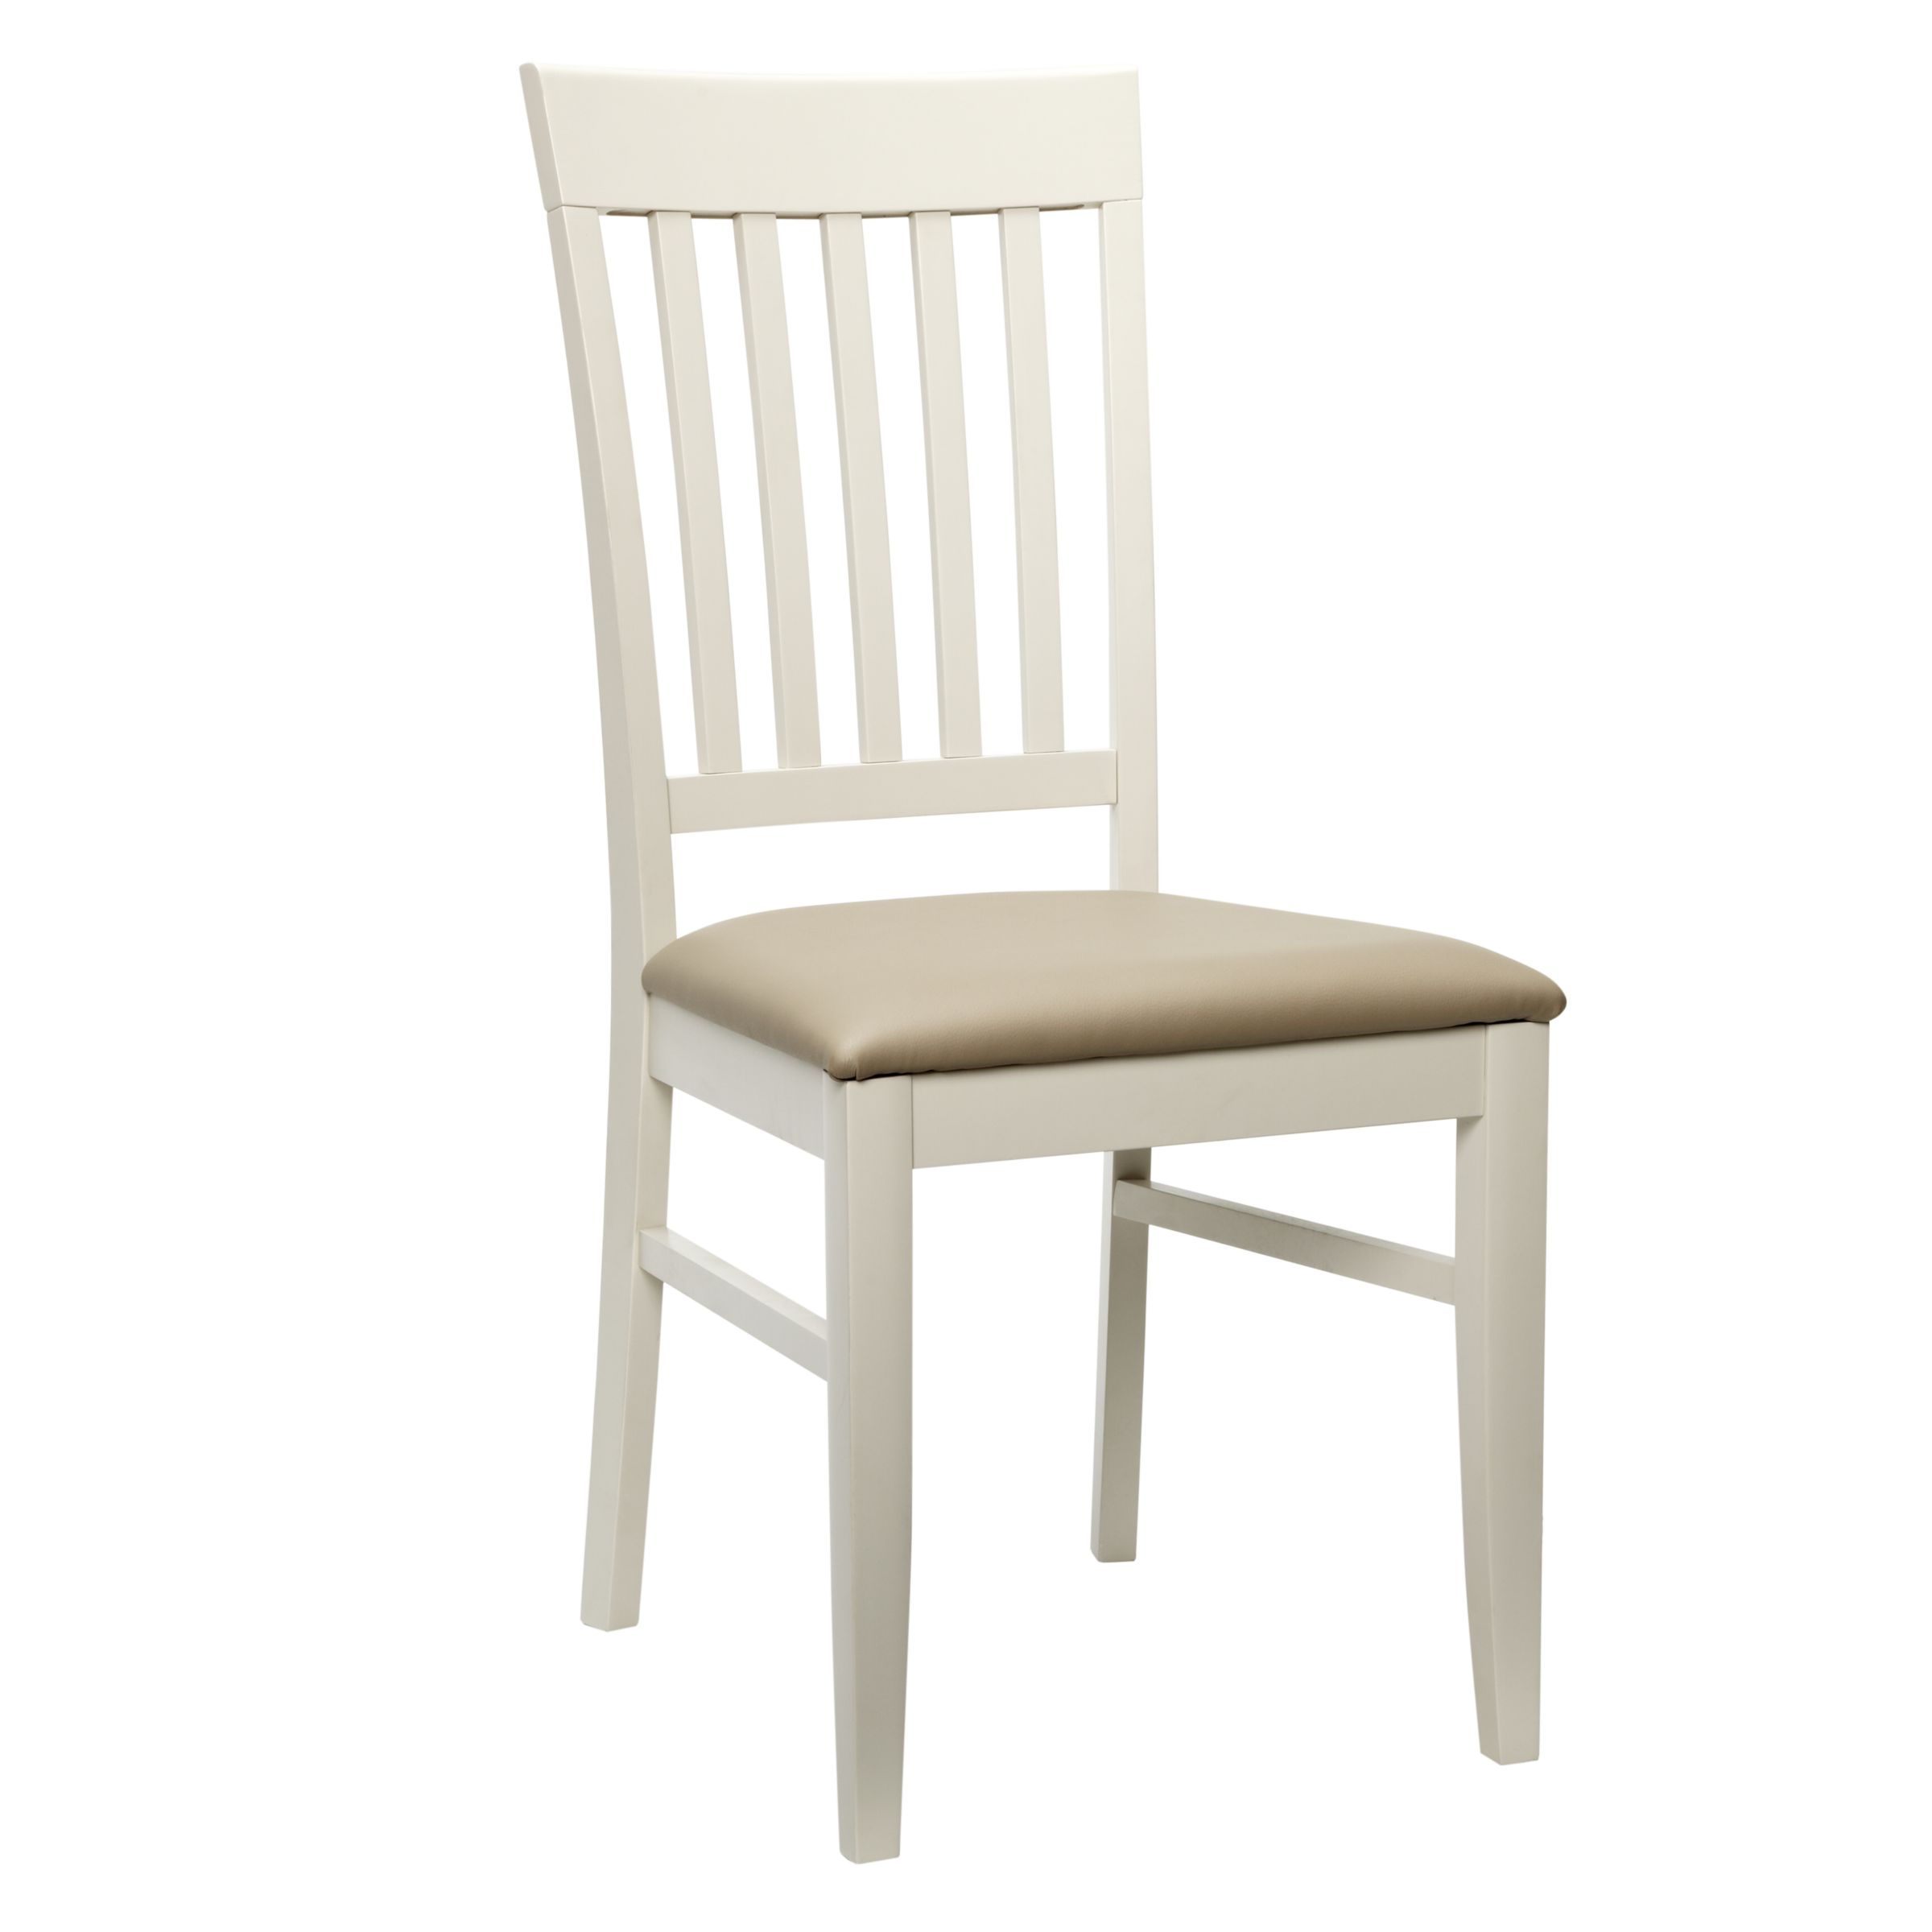 alba slat back dining chair and stool john lewis at